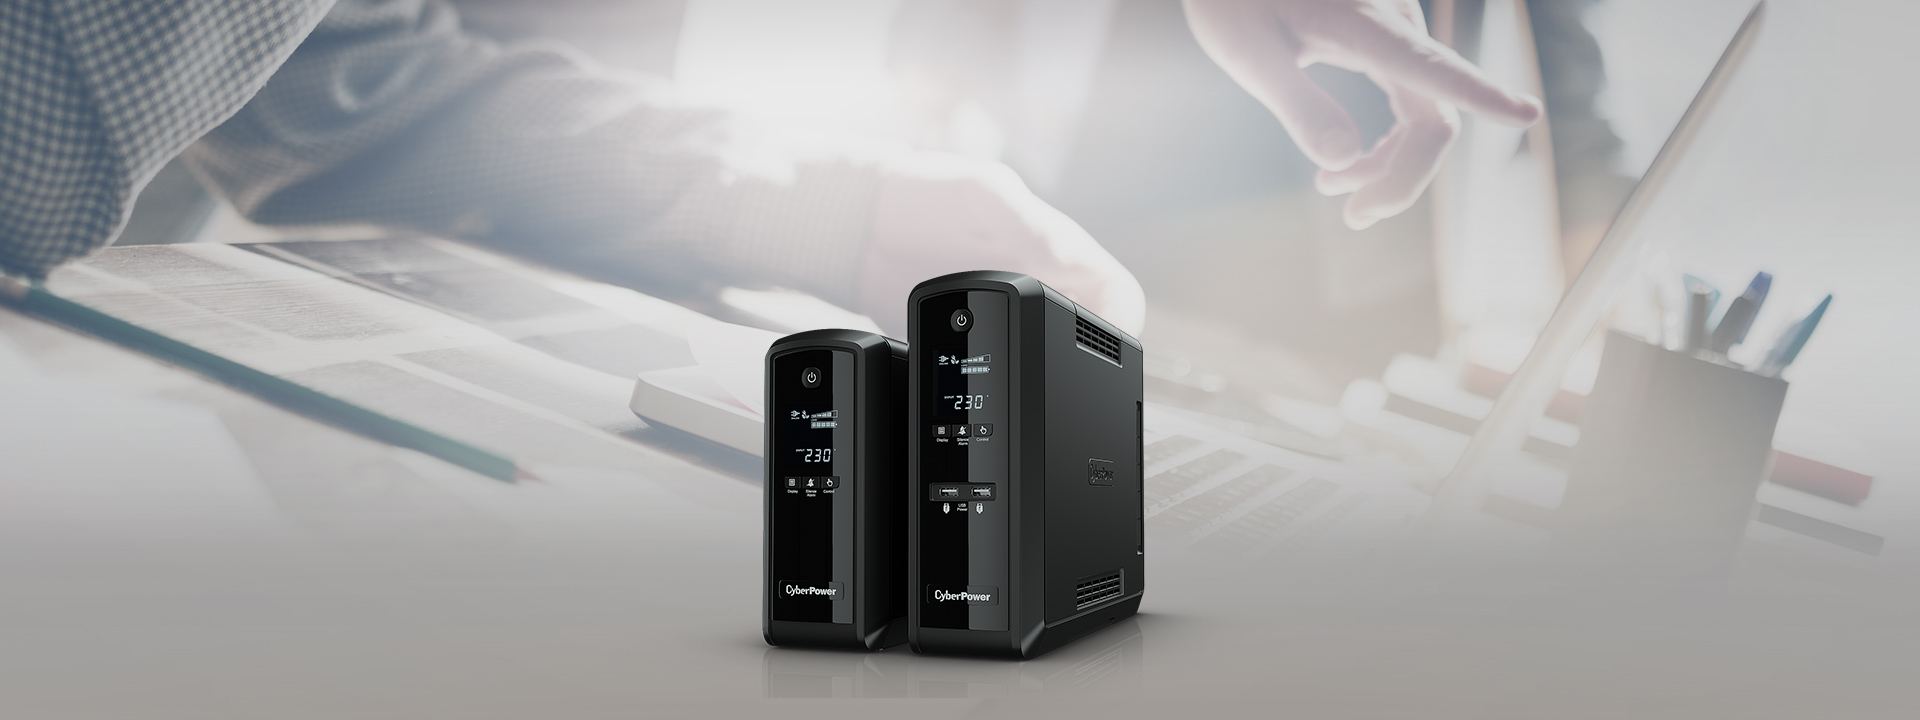 CyberPower's PFC Sinewave UPS features pure sine wave output, which is ideal for equipment requiring active PFC power source